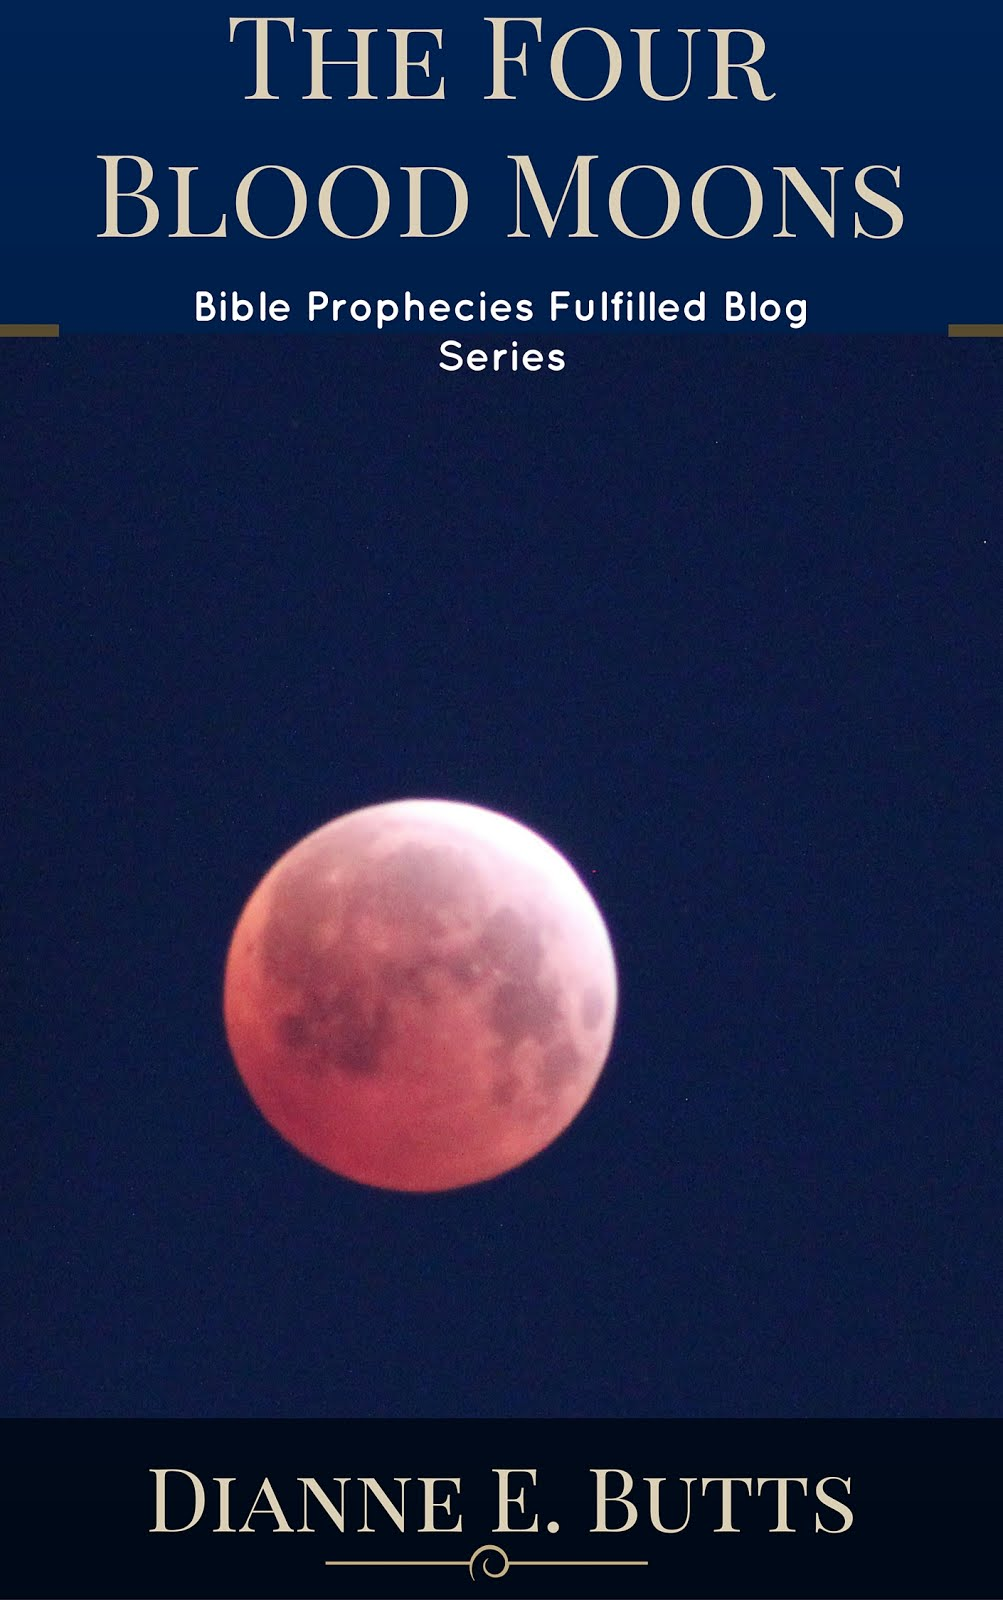 Four Blood Moons: What They Are, What They Mean, & Why They're Important in Light of Bible Prophecy